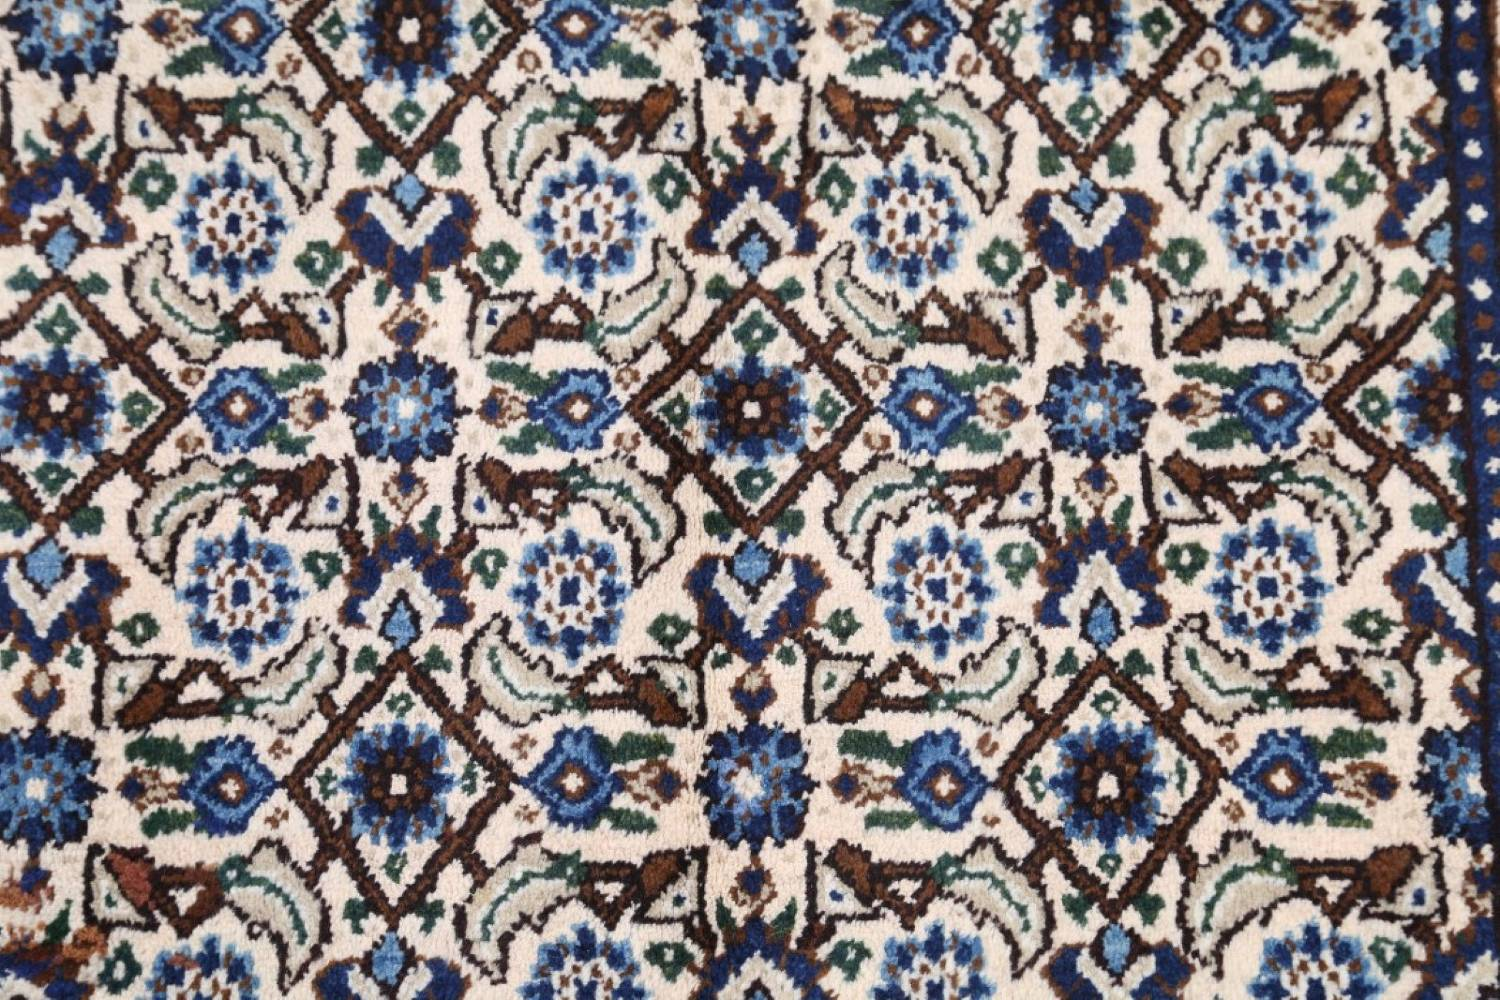 All-Over Floral 7x11 Mood Persian Wool Area Rug image 8